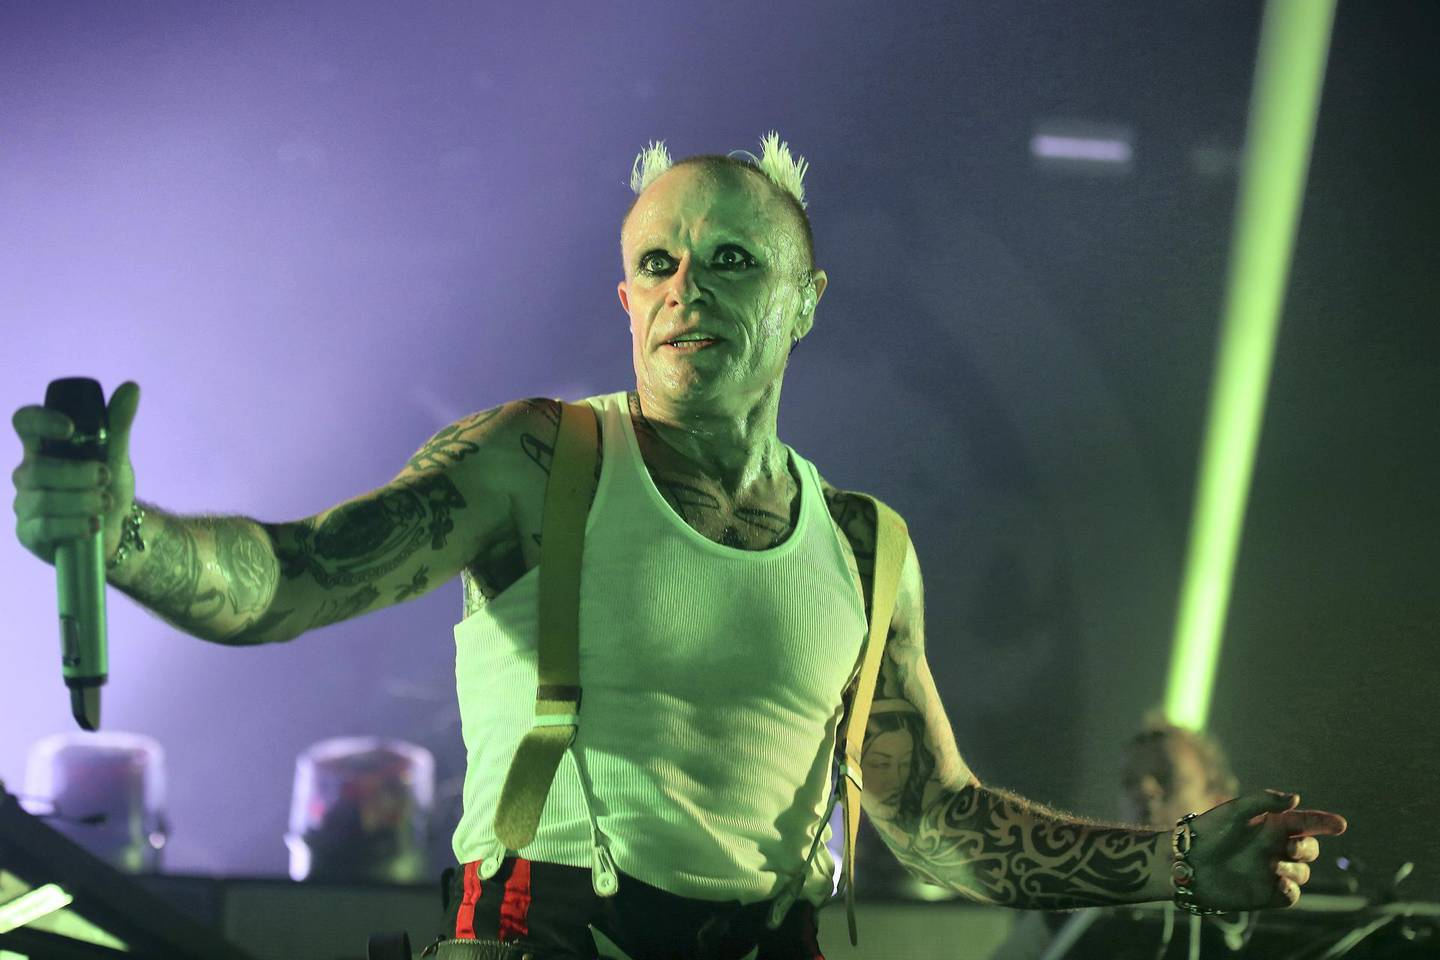 LONDON, ENGLAND - DECEMBER 21:  (EDITORIAL USE ONLY)  Keith Flint of The Prodigy perform live on stage at O2 Academy Brixton on December 21, 2017 in London, England.  (Photo by Simone Joyner/Getty Images)